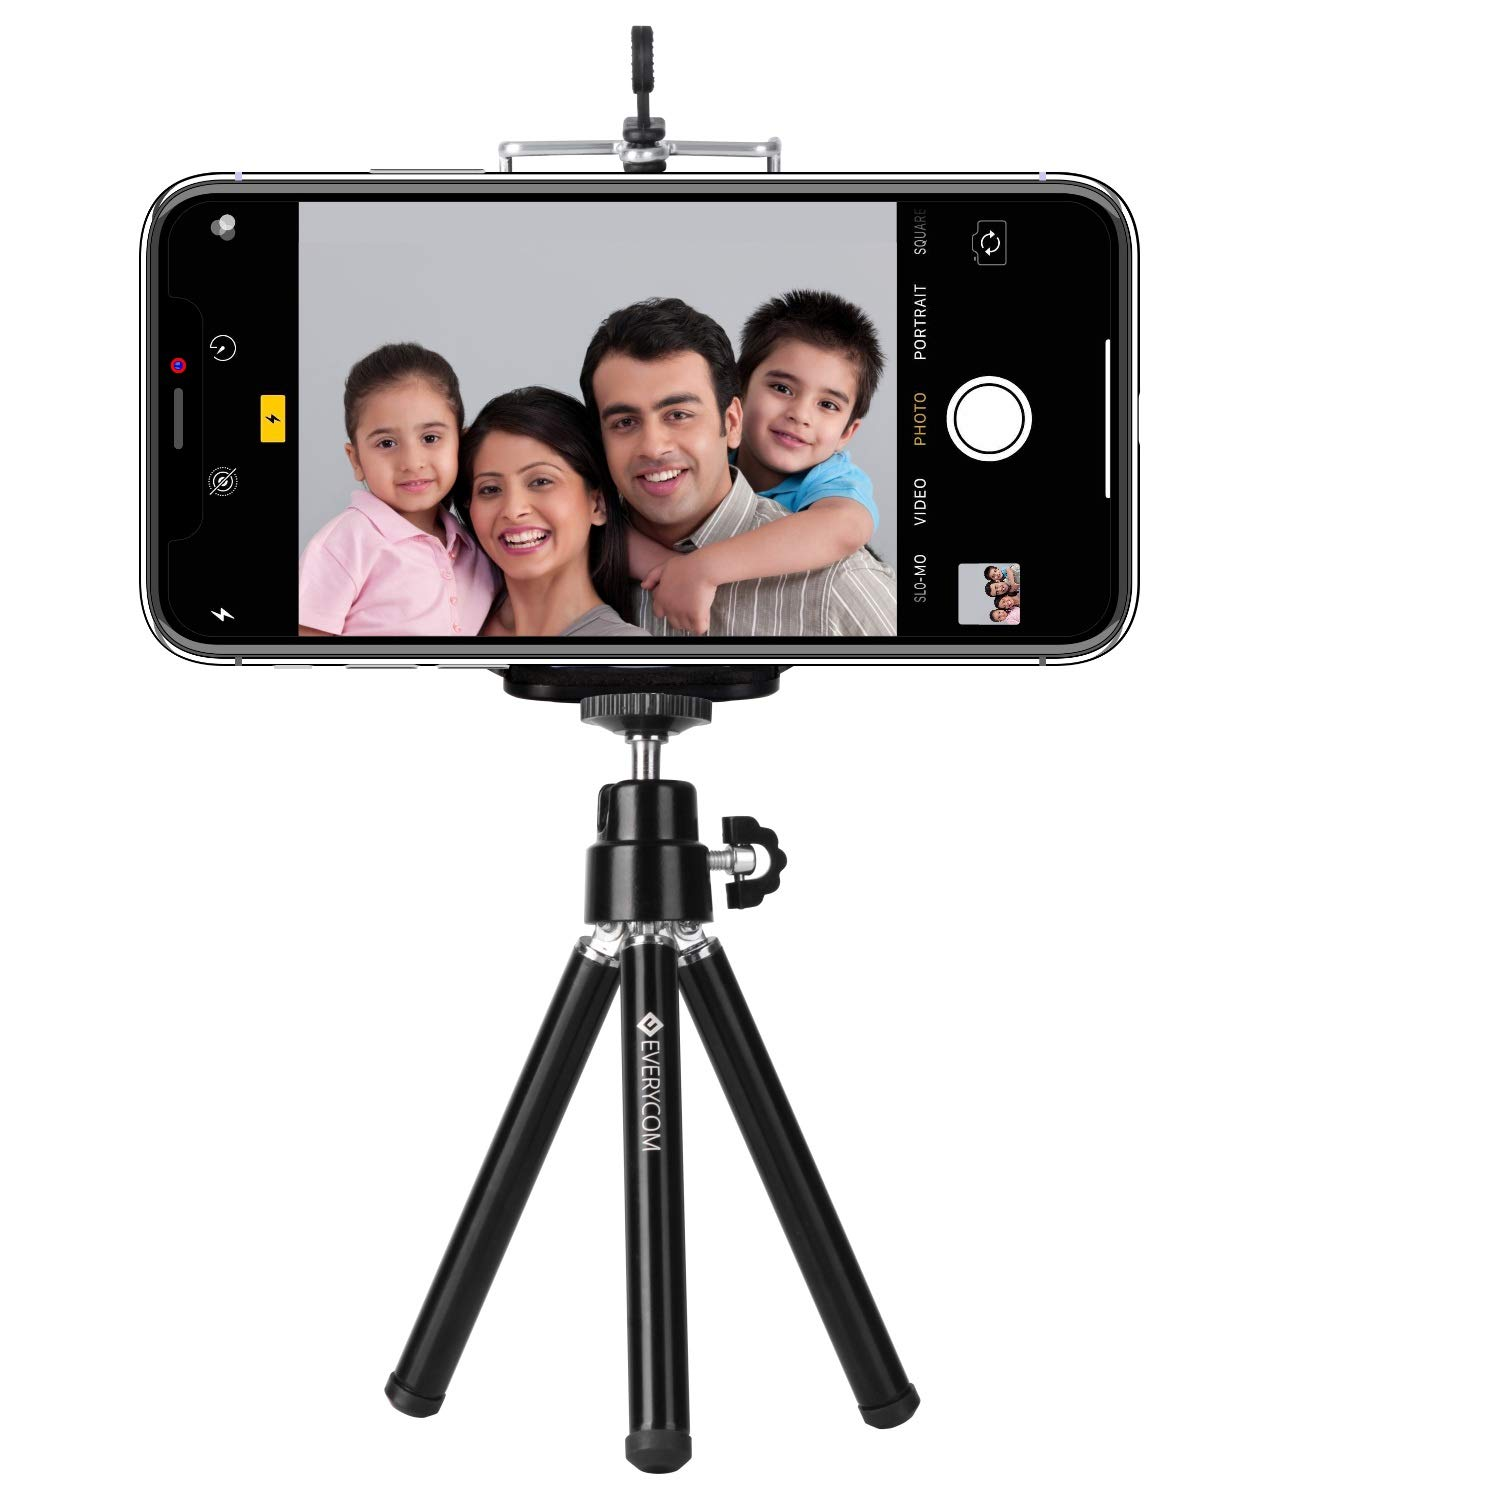 CAOMING Table Portable Tripod Stand for Digital Cameras Durable Max Height: 120mm Black